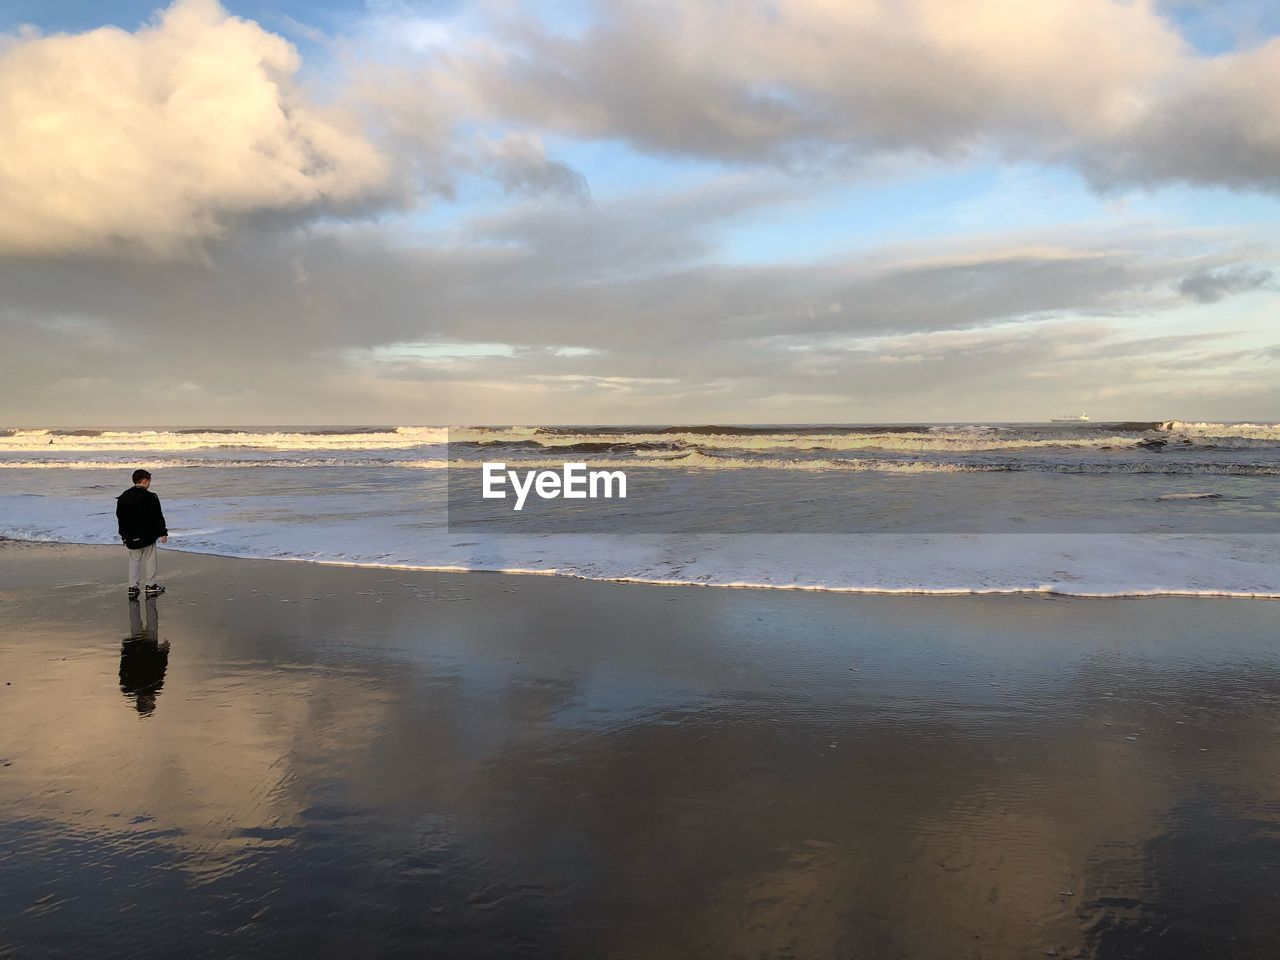 water, sea, cloud - sky, sky, nature, real people, one person, beauty in nature, tranquility, tranquil scene, outdoors, beach, sunset, scenics, horizon over water, standing, leisure activity, day, men, wave, people